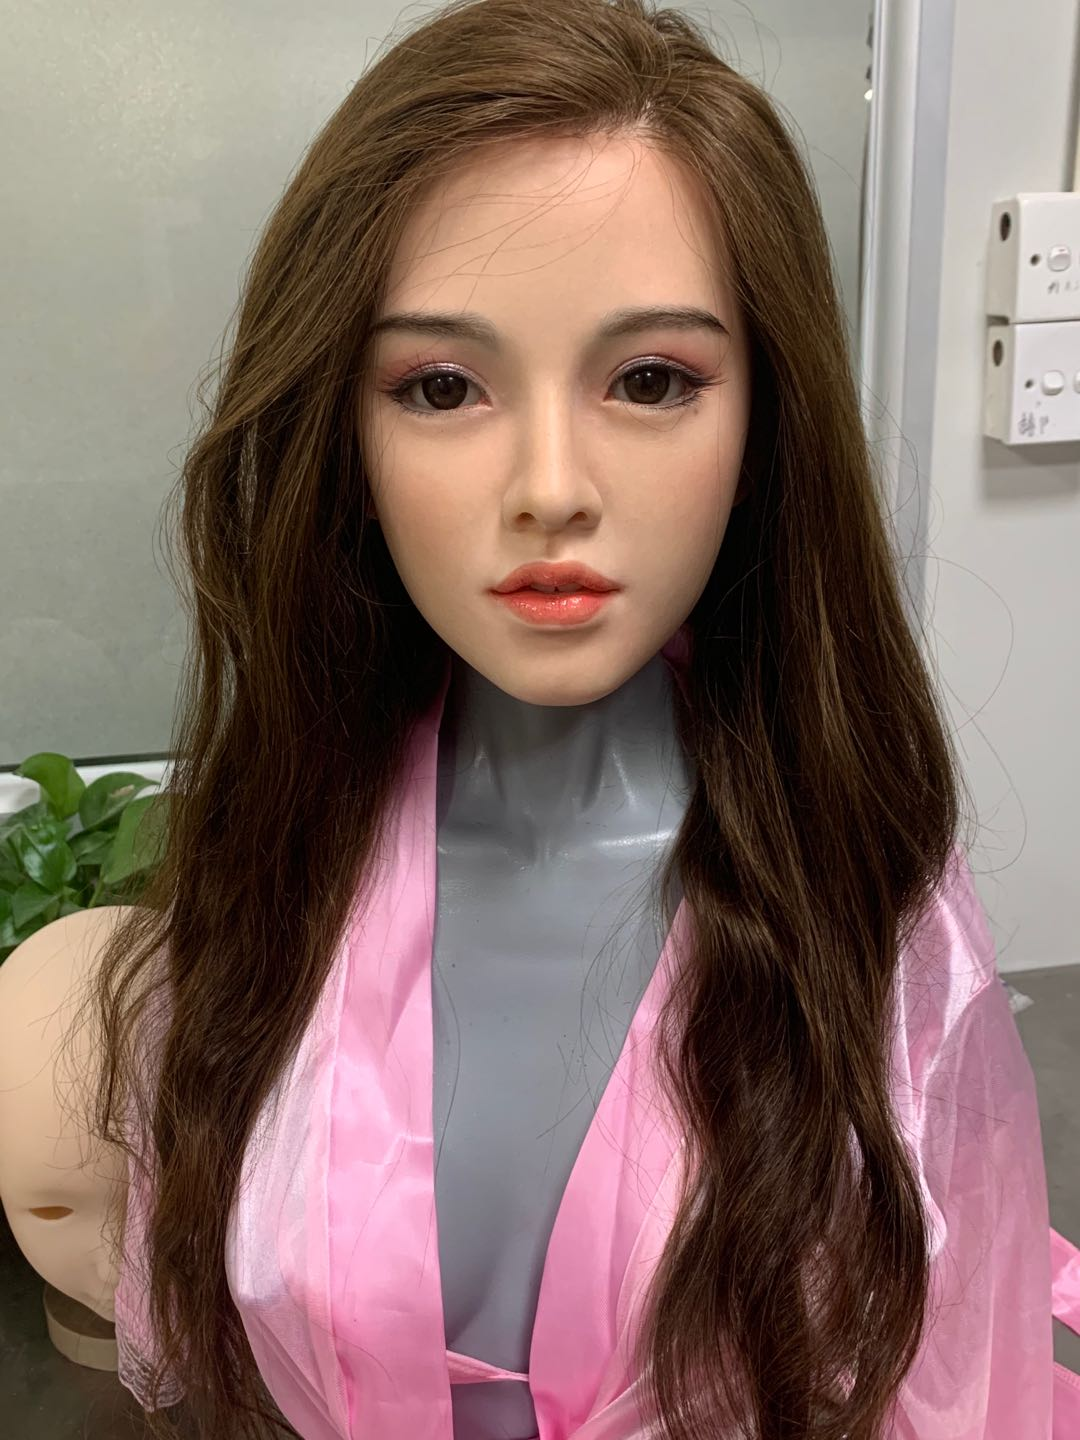 Starpery 151cm Asian Face Rong slim petite full silicone sex doll